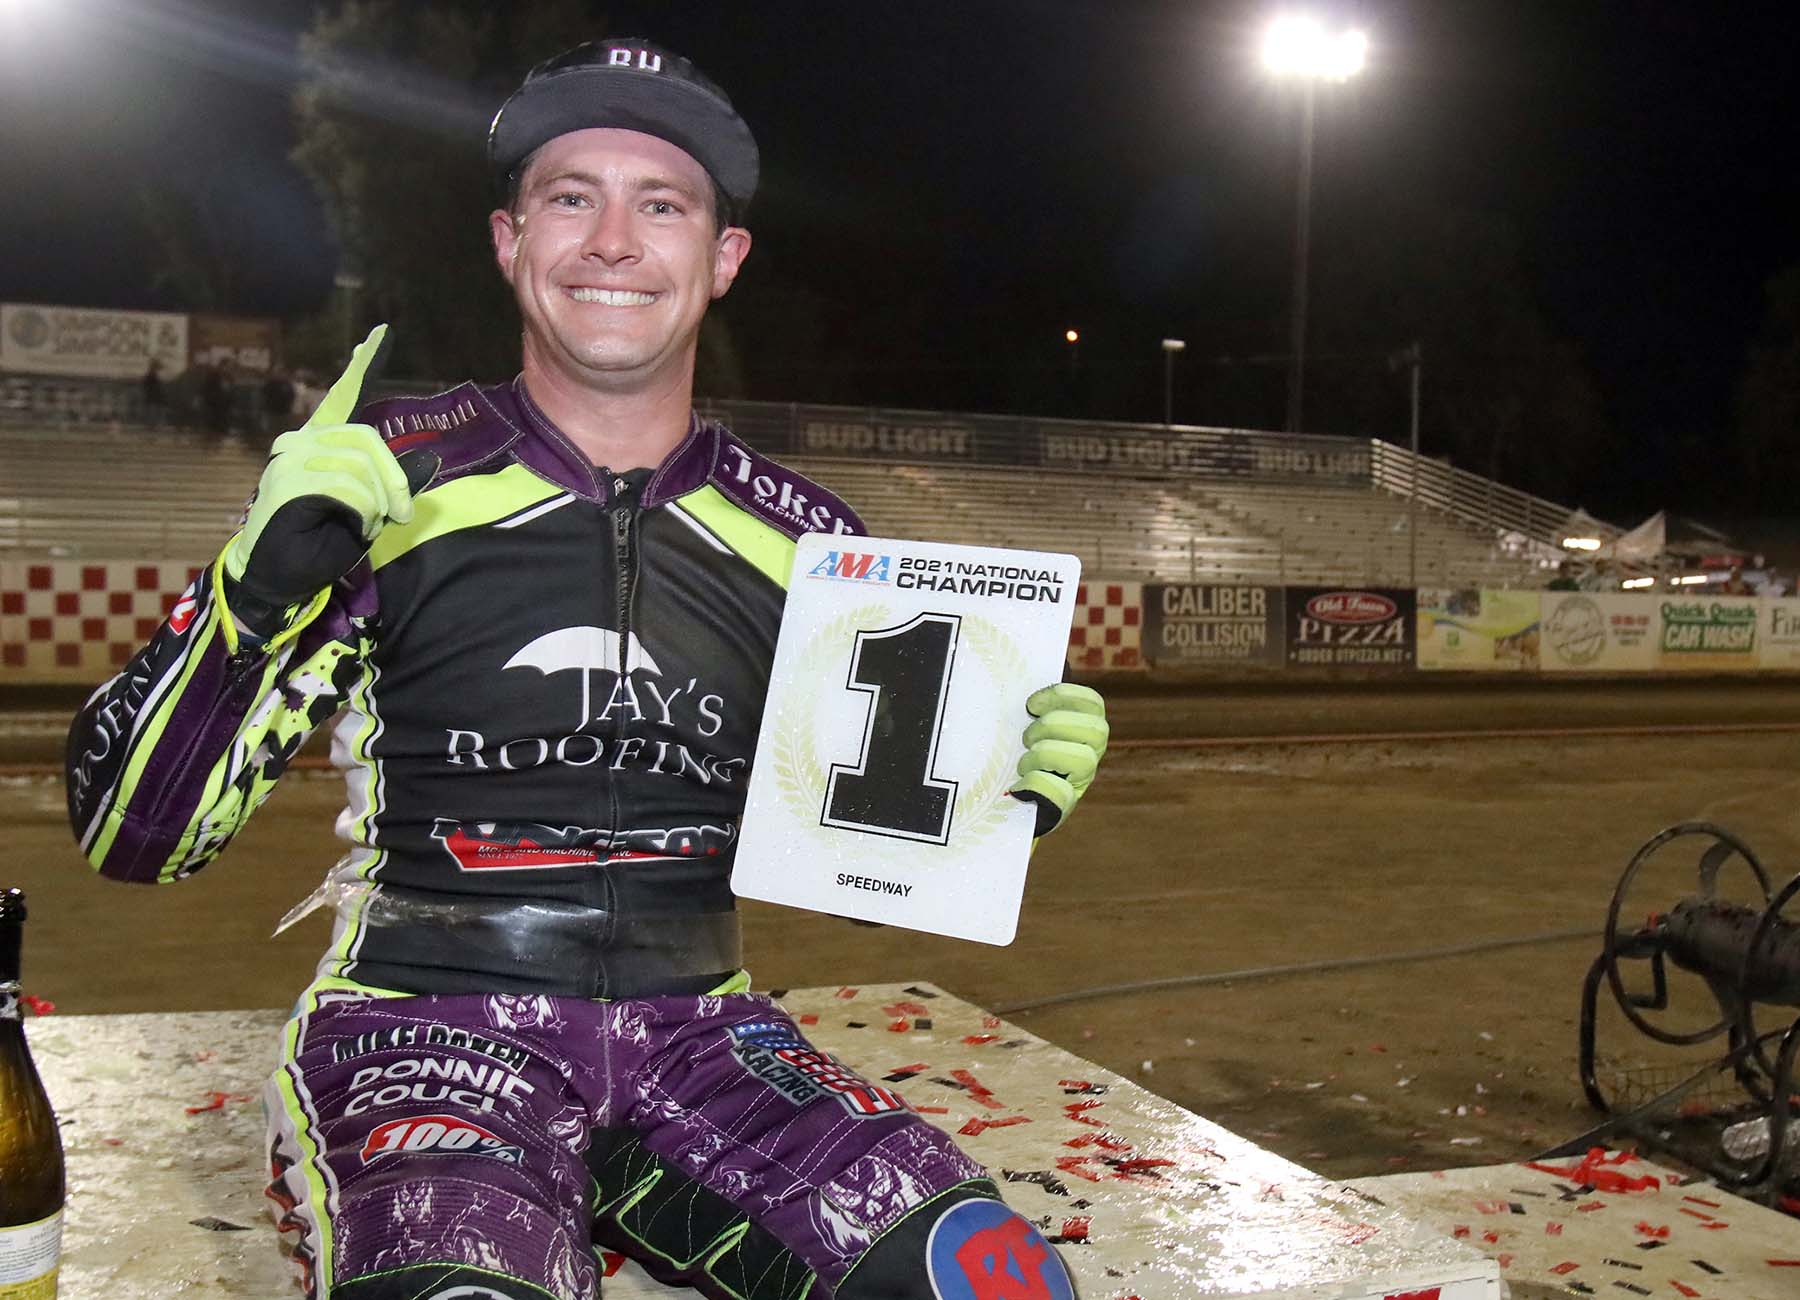 Max Ruml wins the 2021 Speedway National Championship.